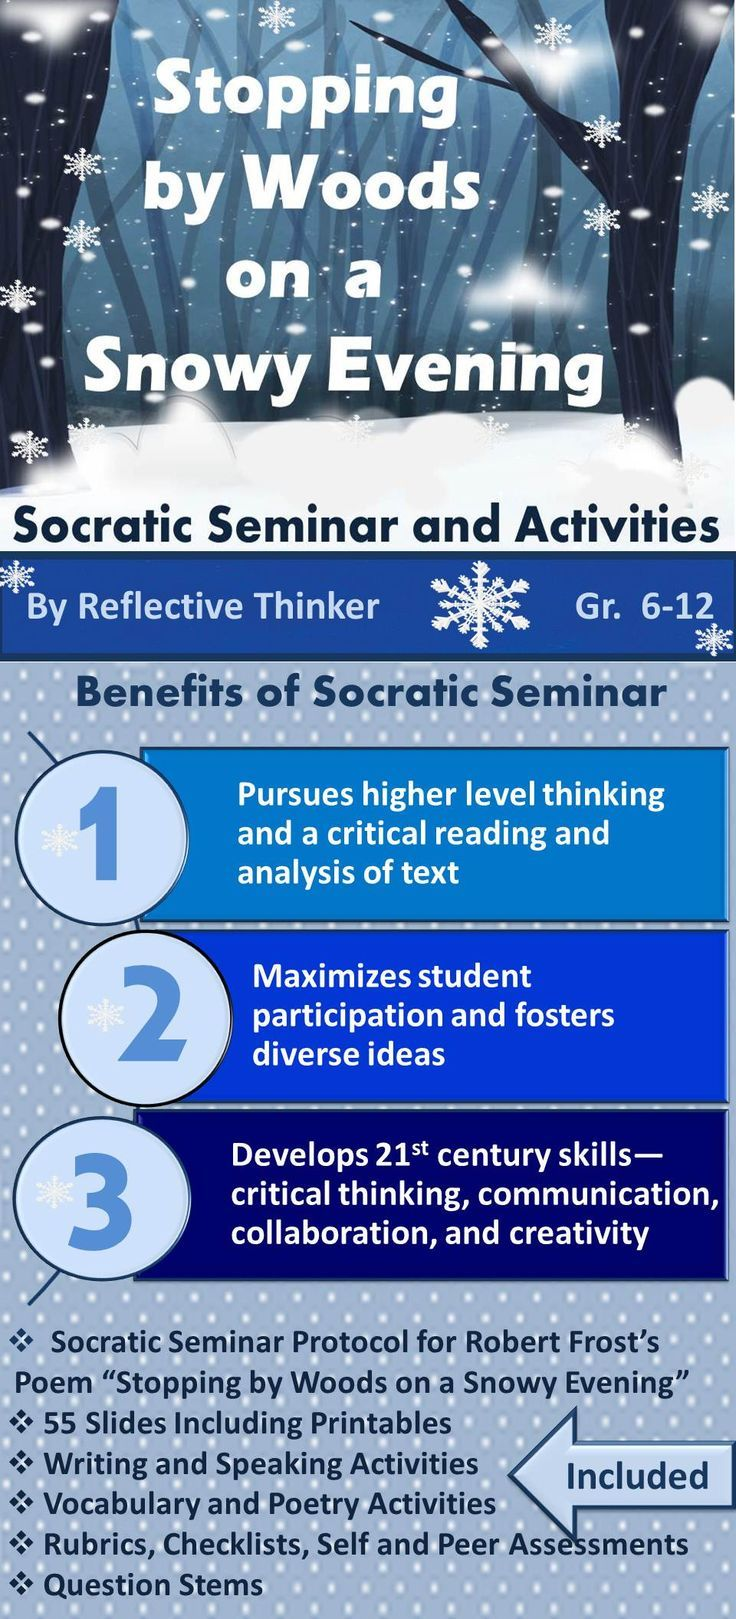 Socratic Seminar Is An Excellent And Engaging Way For Students To